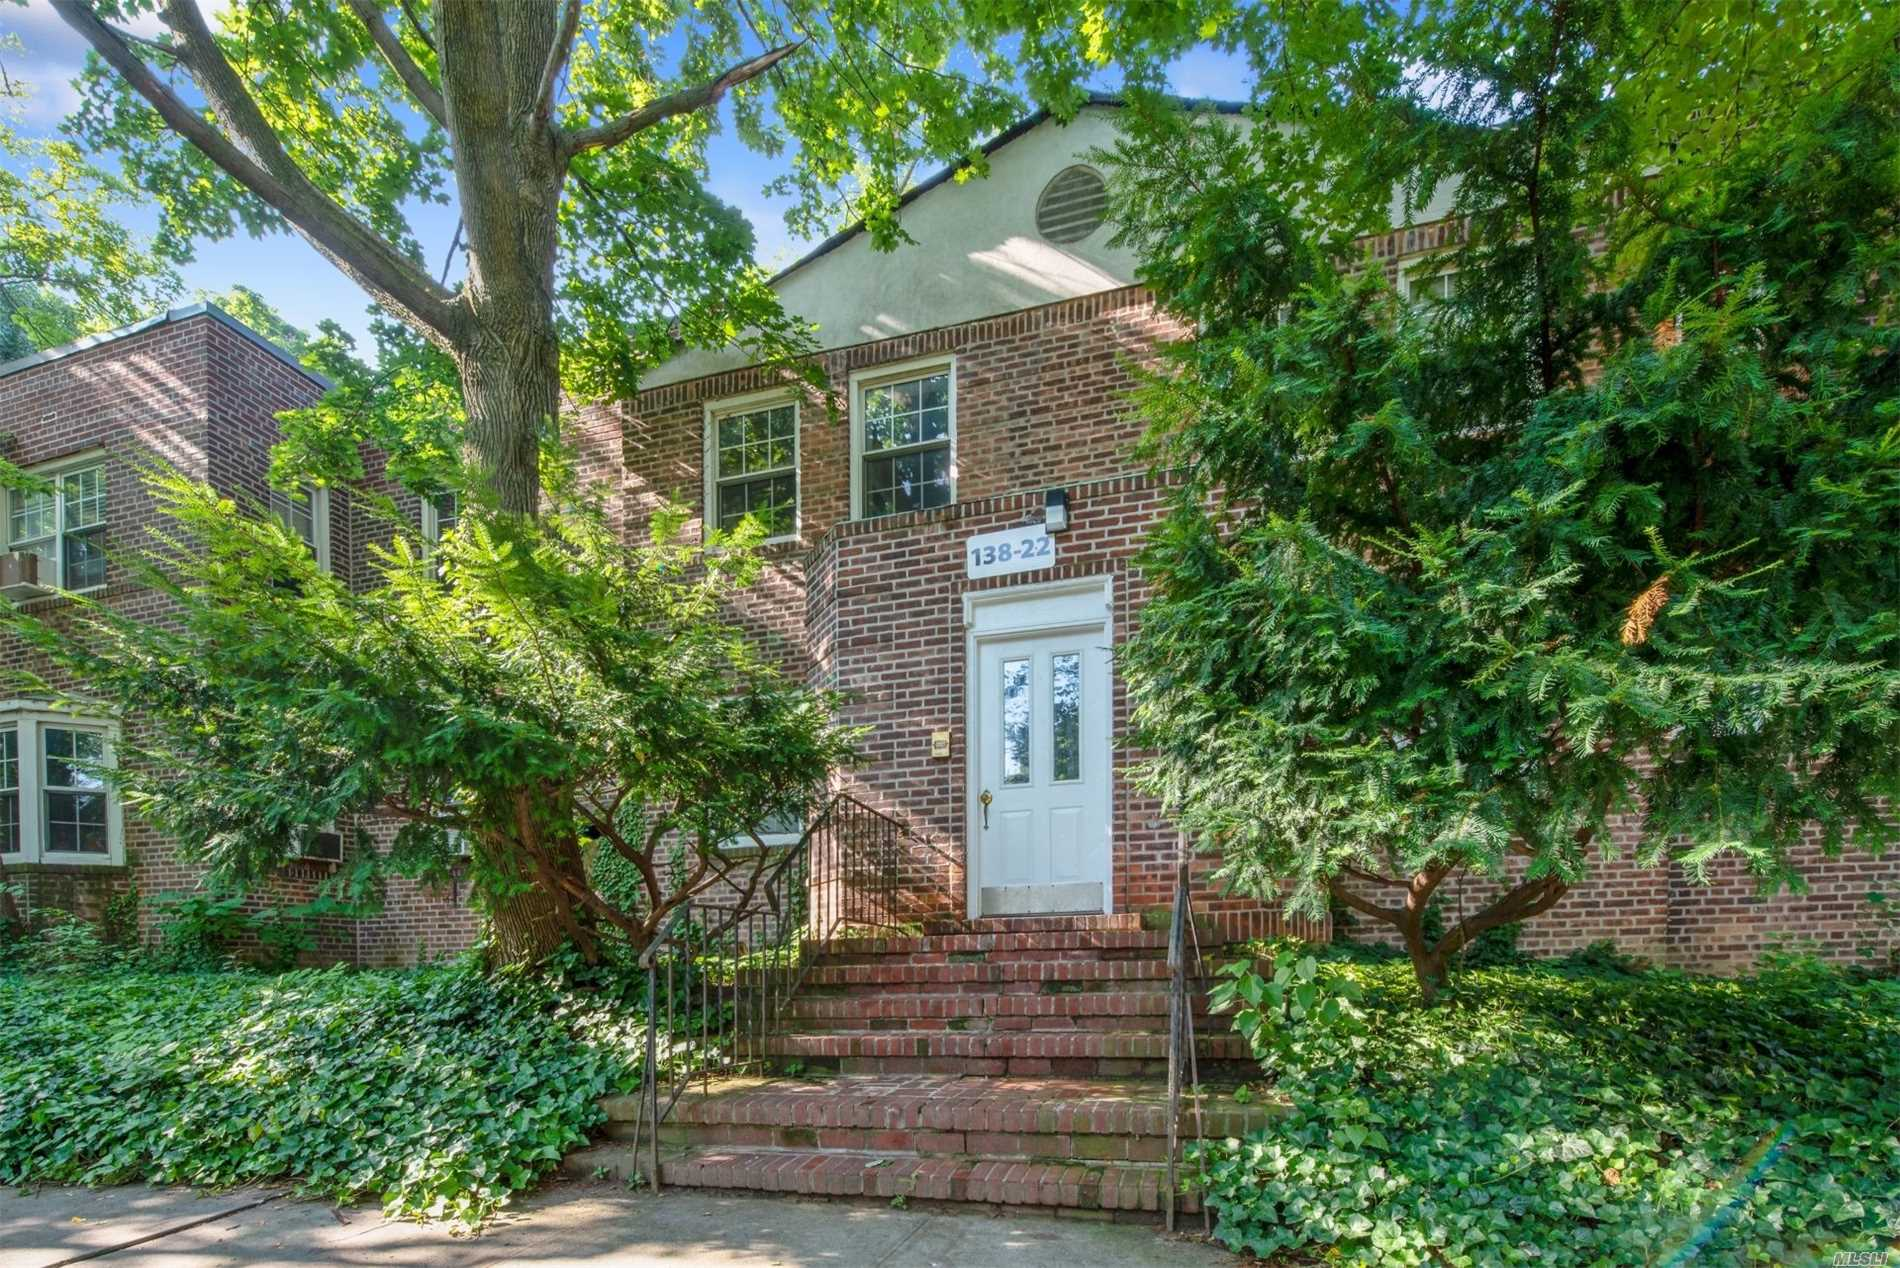 Kew Gardens Hills Beautiful 2 Bedroom Co-Op Updated Kitchen With New Appliances Recently Renovated Bathroom With Washer & Dryer. A Real Winner Many Extras! Must See.